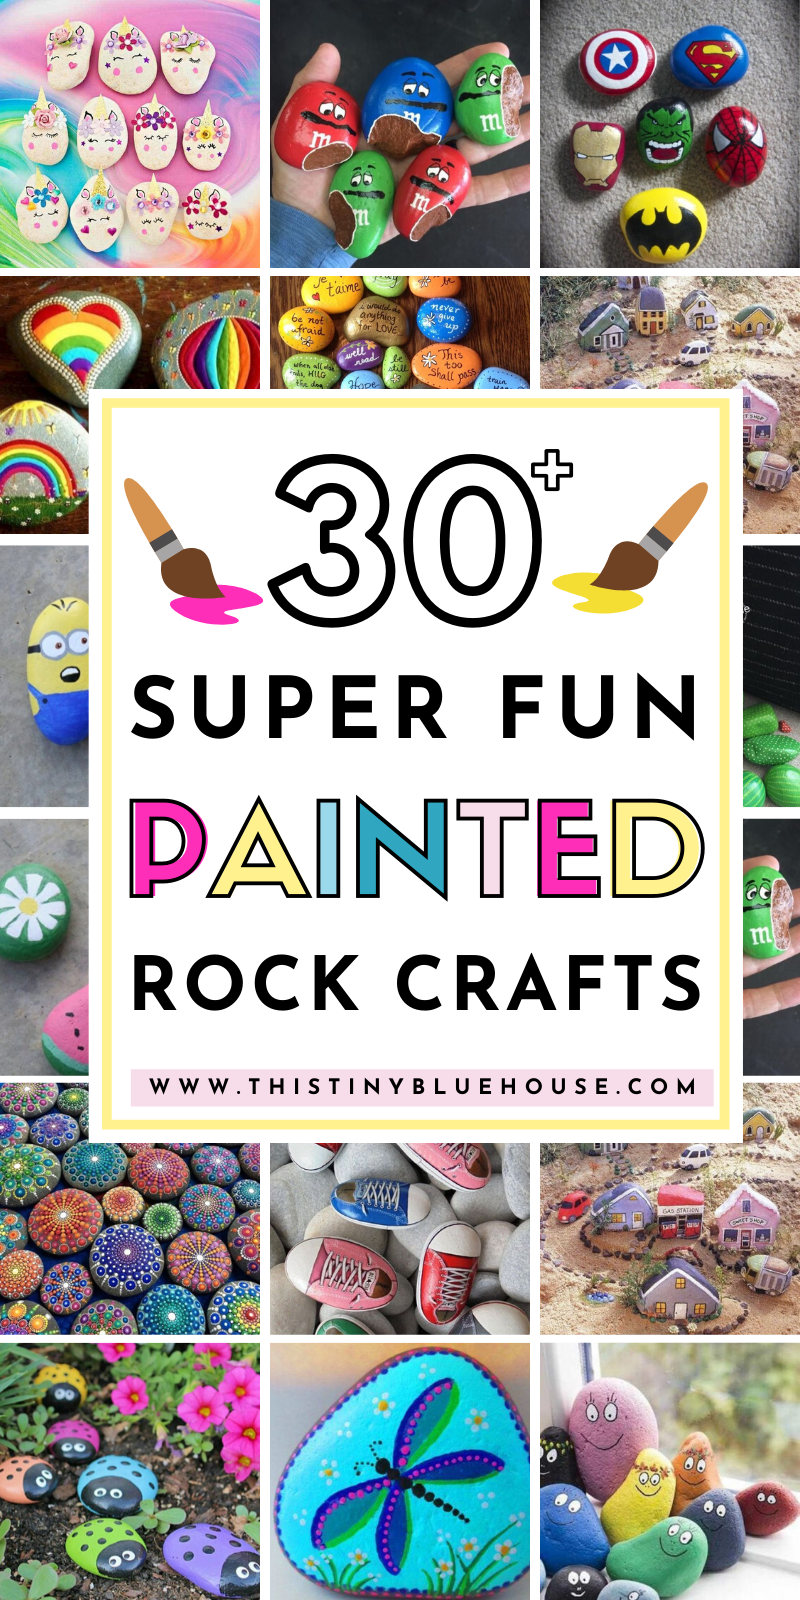 Here are 30+ fun painted rock ideas that will provide hours of fun! These creative and unique painted rocks are a perfect family friendly activity. #paintedrocks #paintedrockideas #DIYPaintedRocks #PaintedRocksForTheGarden #PaintedRocksKids #PaintedRocksEaster #PaintedRocksHowTo #PaintedRocksIdeasEasy #PaintedRocksIdeasForKids